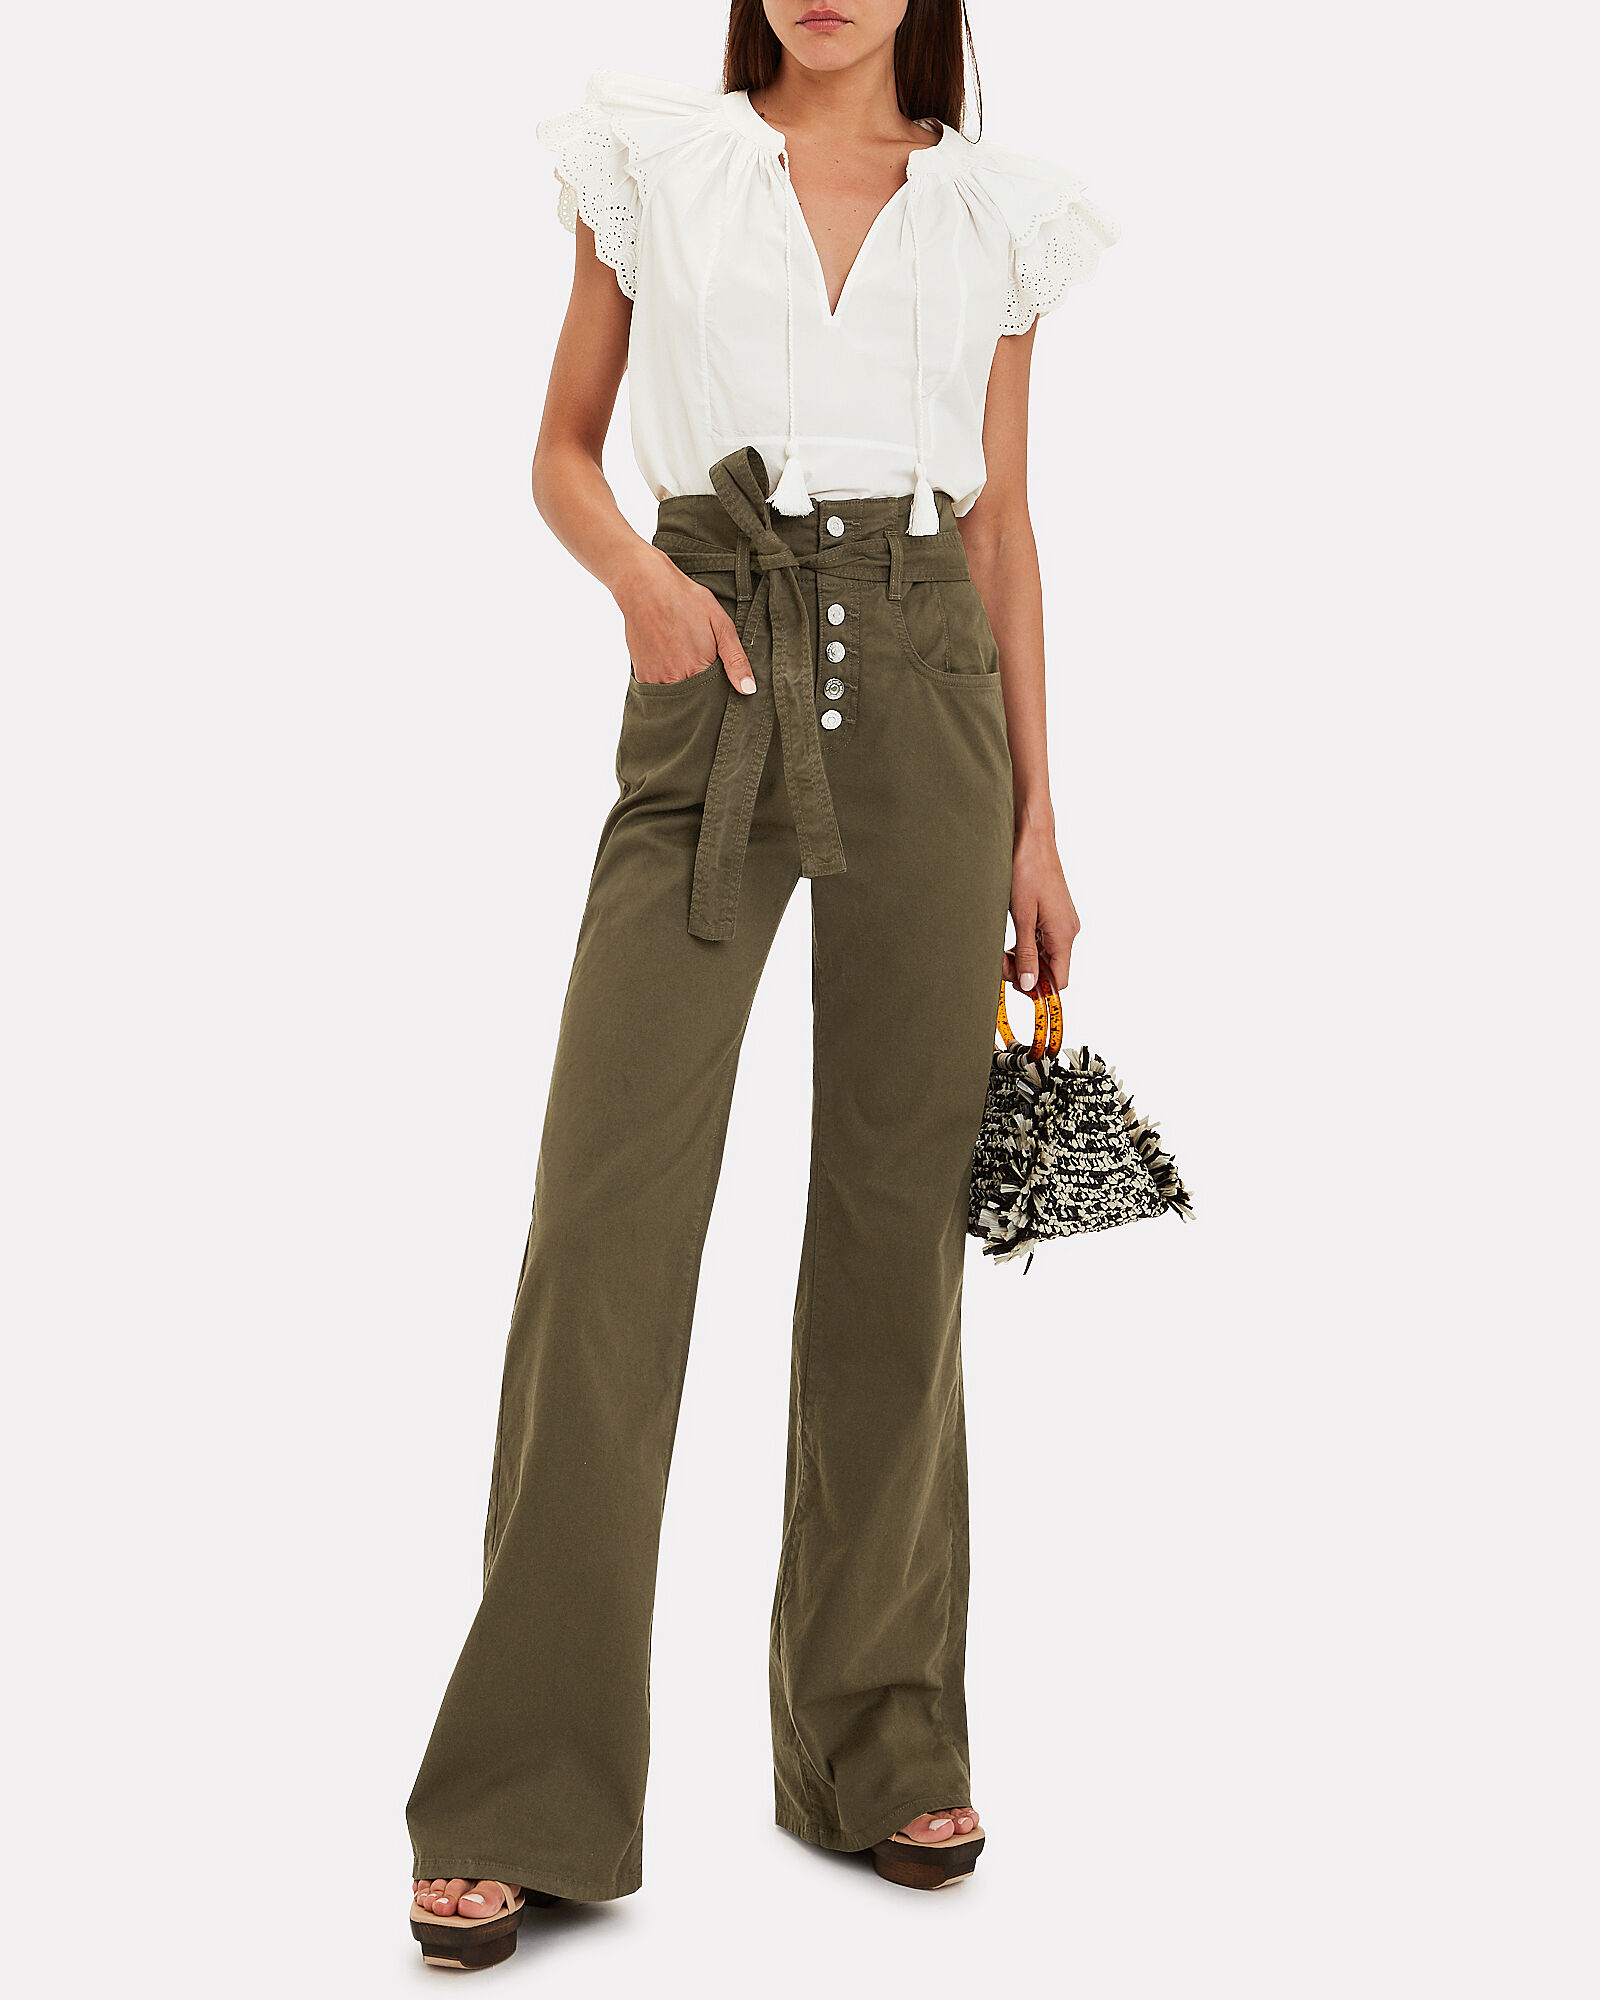 Rosanna Wide Leg Denim Pants, OLIVE/ARMY, hi-res